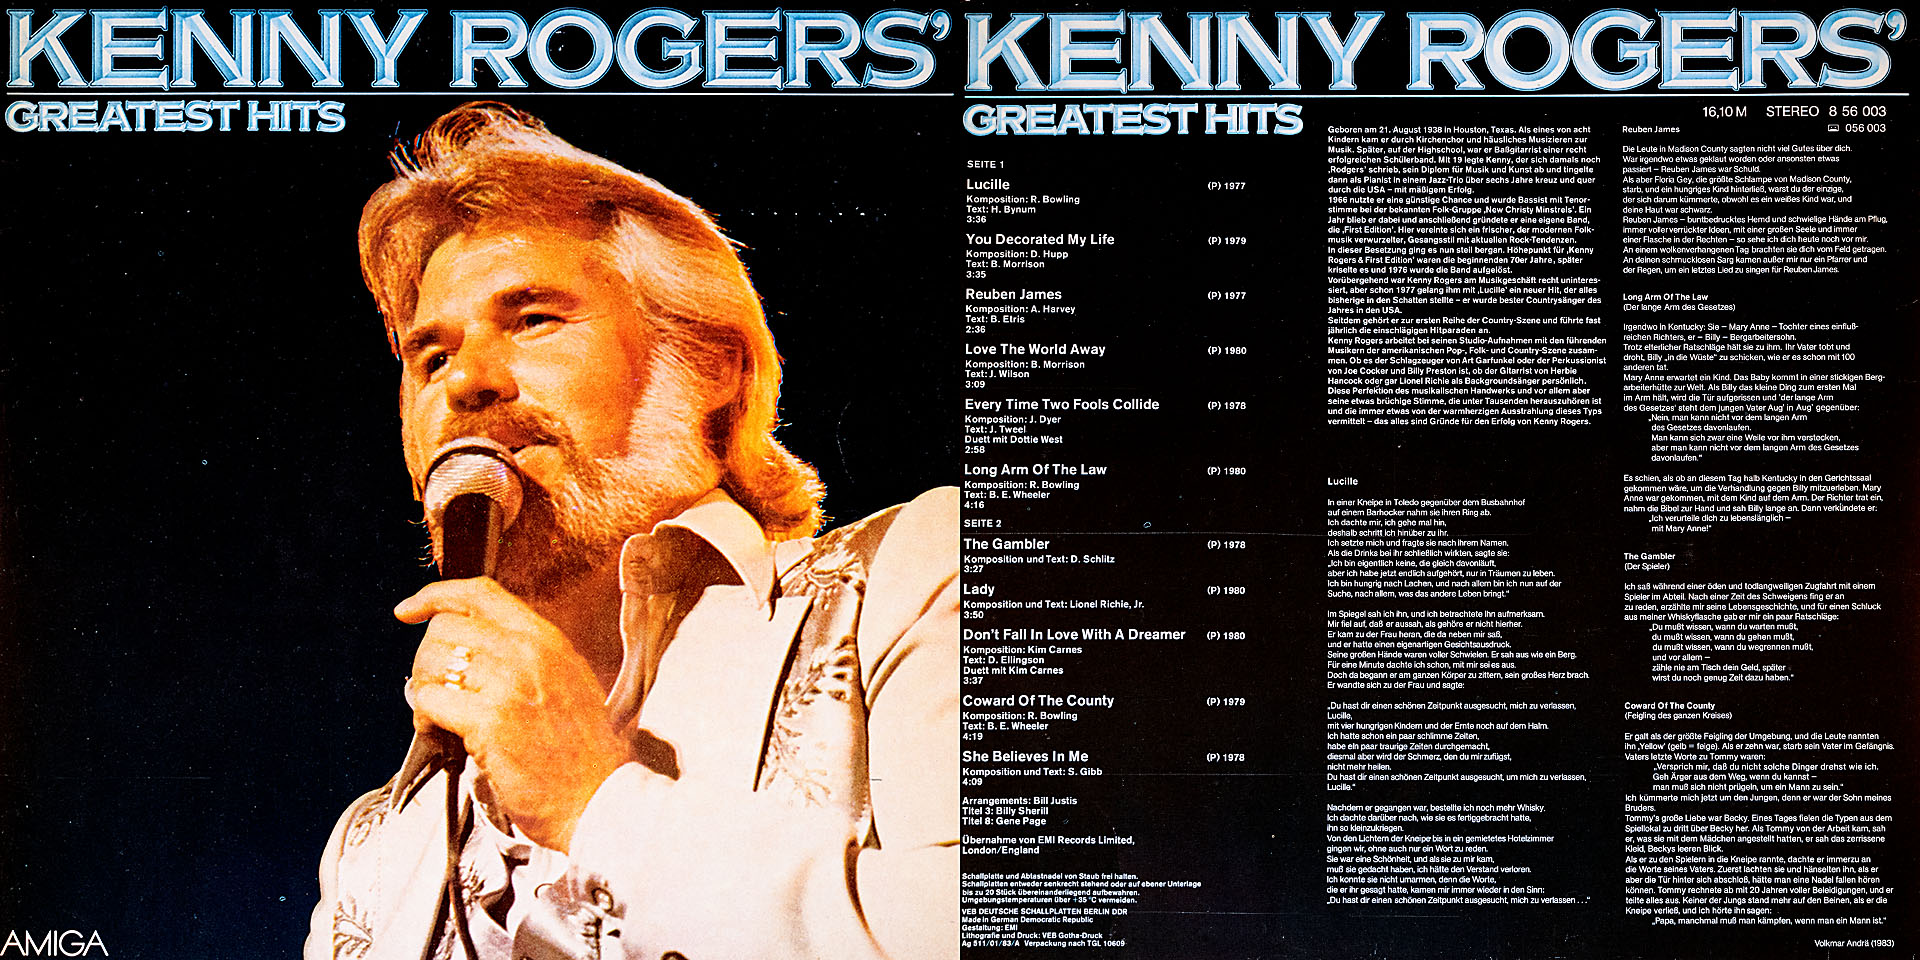 Kenny Rogers' Greatest Hits - Kenny Rogers